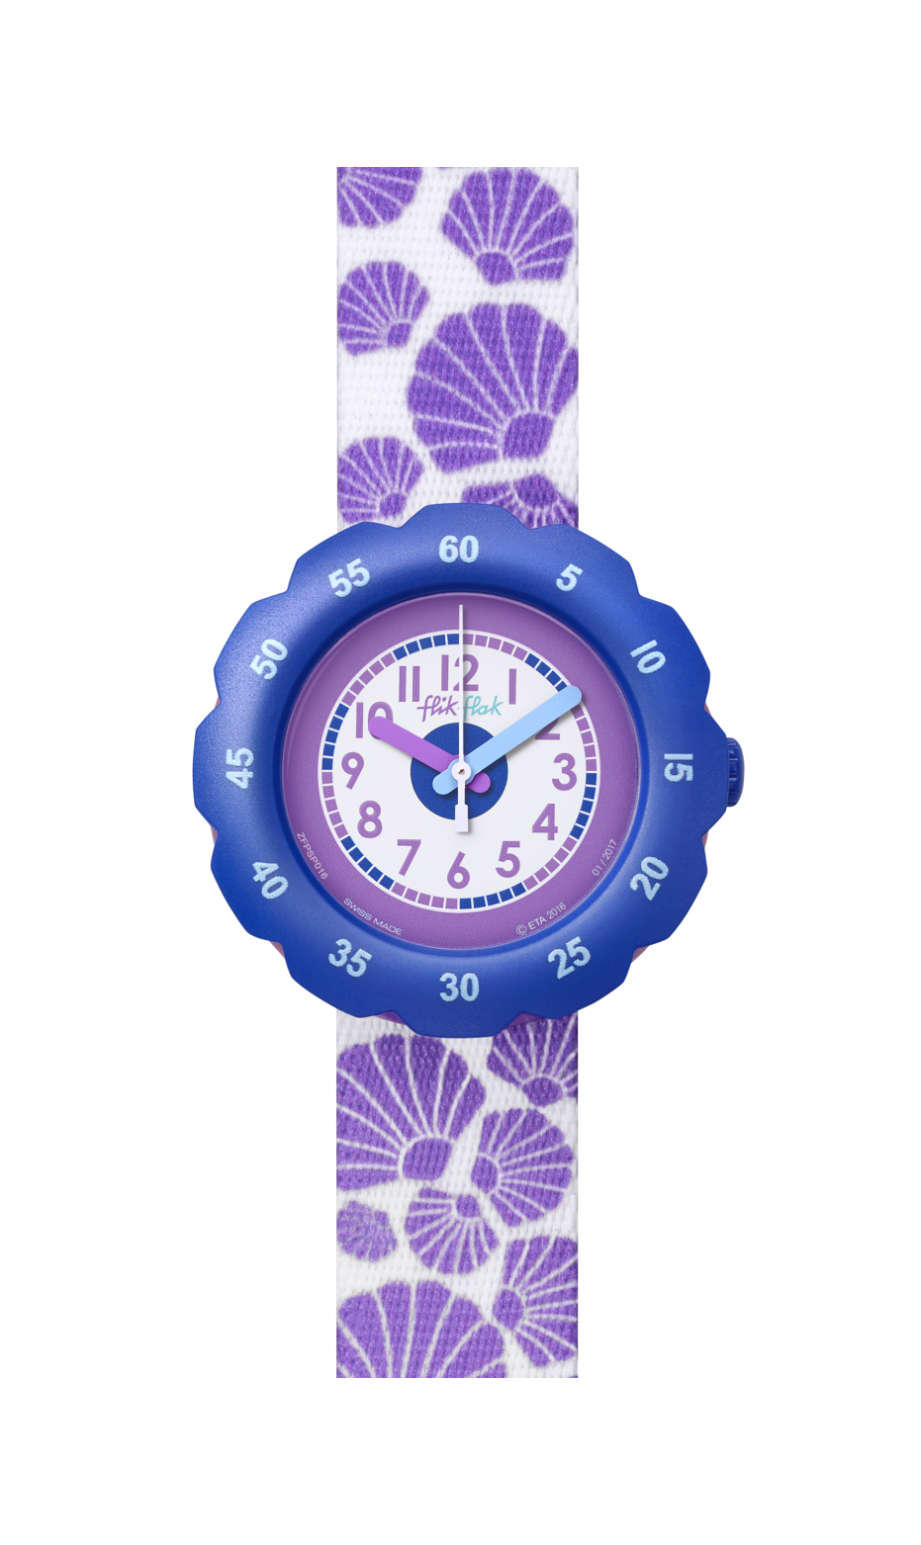 Swatch - SOFT PURPLE - 1